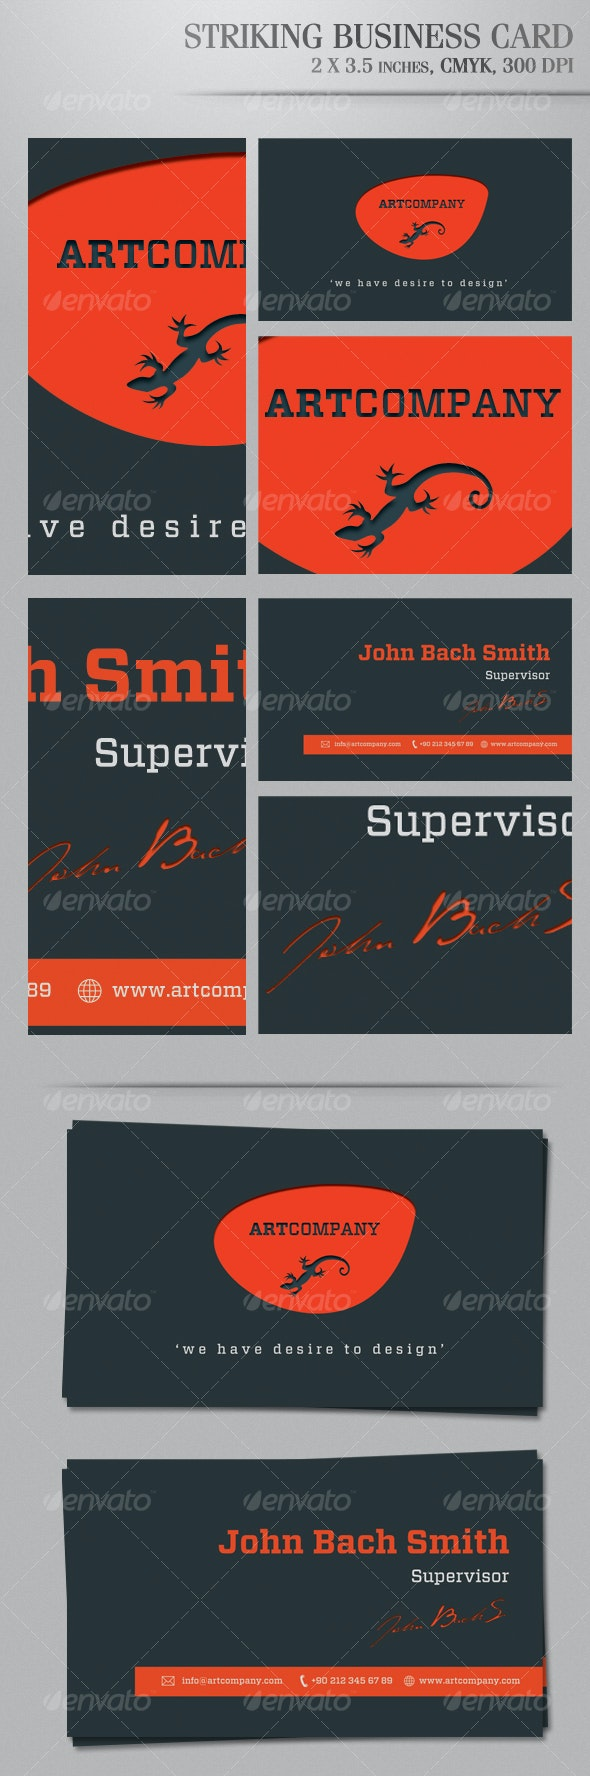 Striking Business Card - Corporate Business Cards